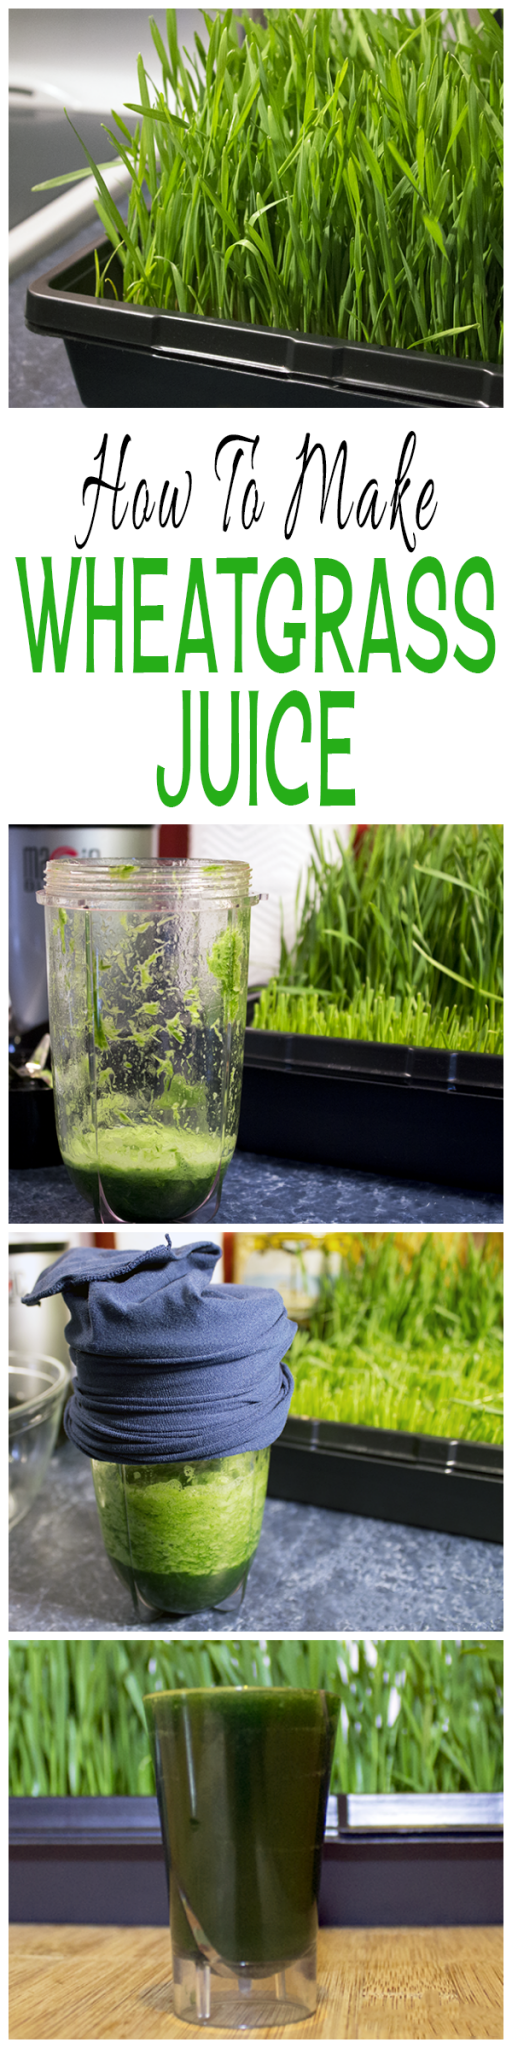 Best Wheatgrass Juice Recipe